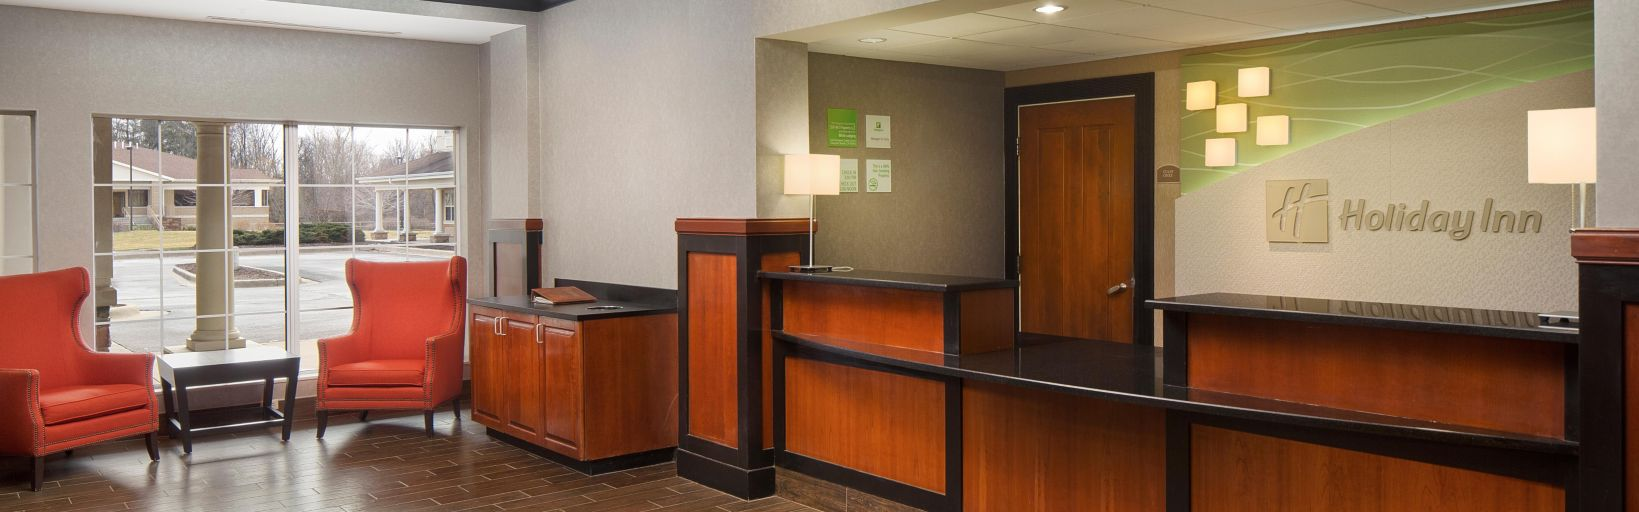 holiday inn grand rapids airport hotel by ihg holiday inn grand rapids airport